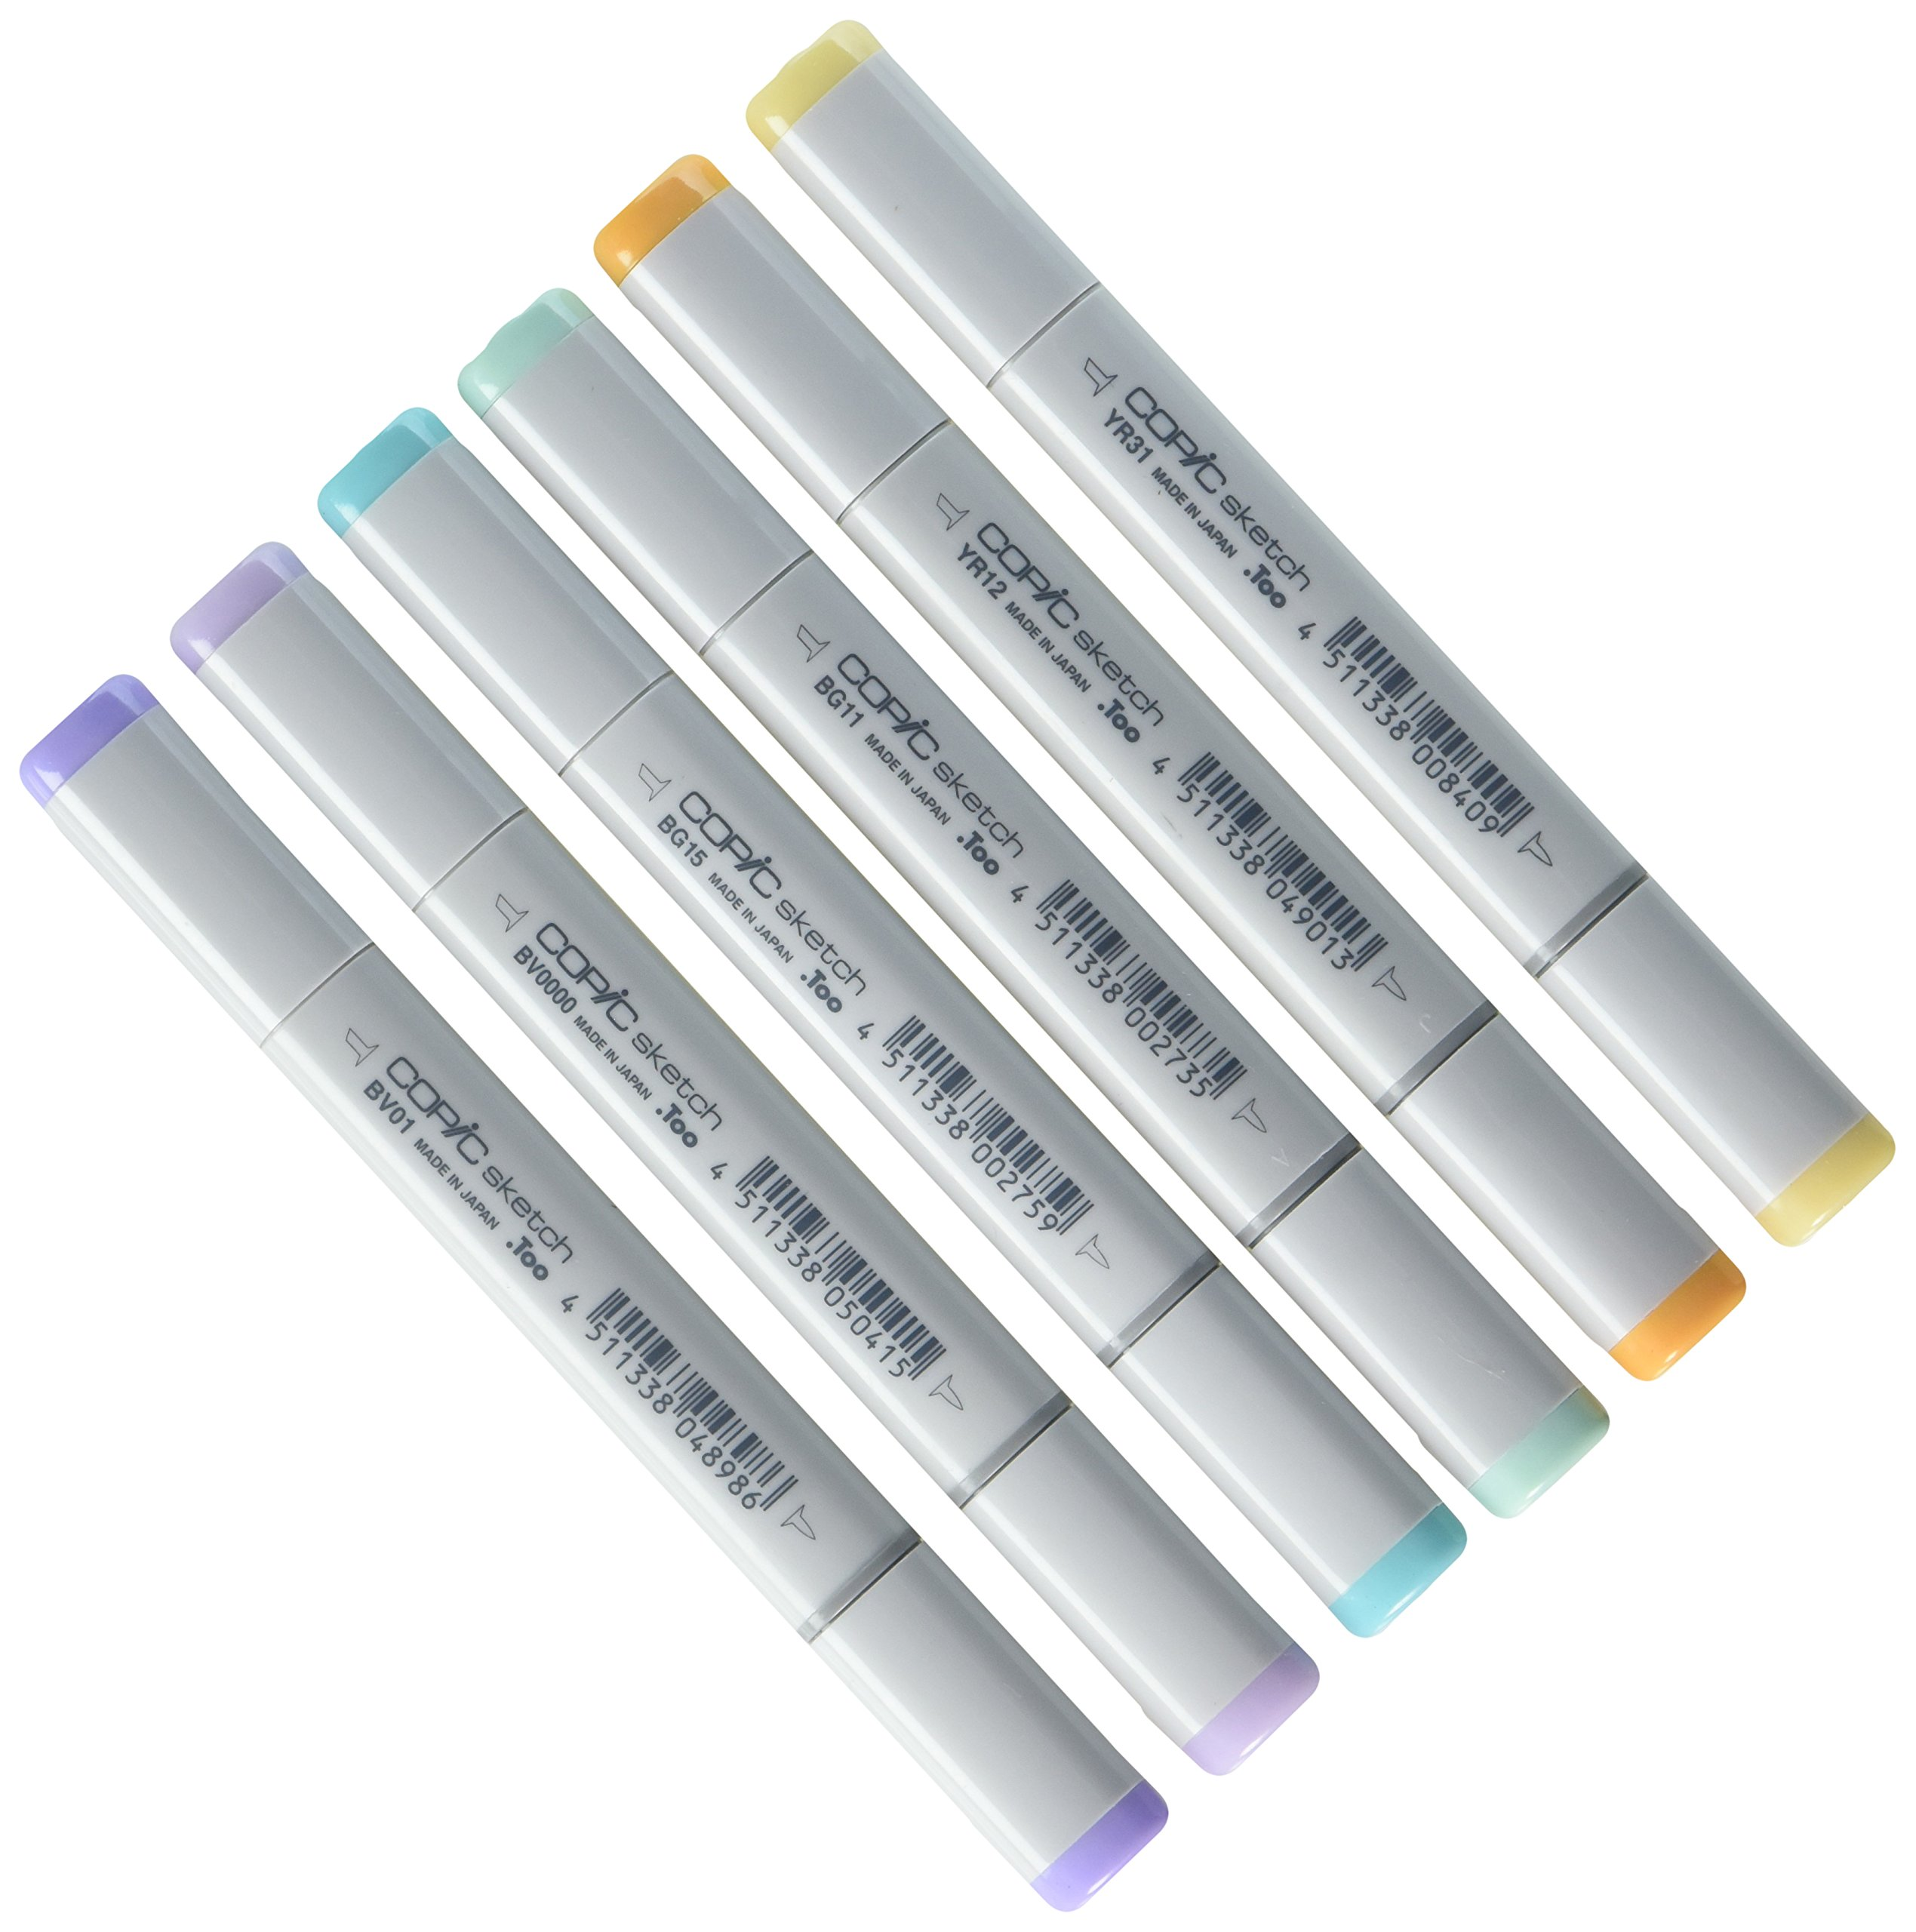 Copic Marker 6-Piece Sketch Set, Pale Pastels